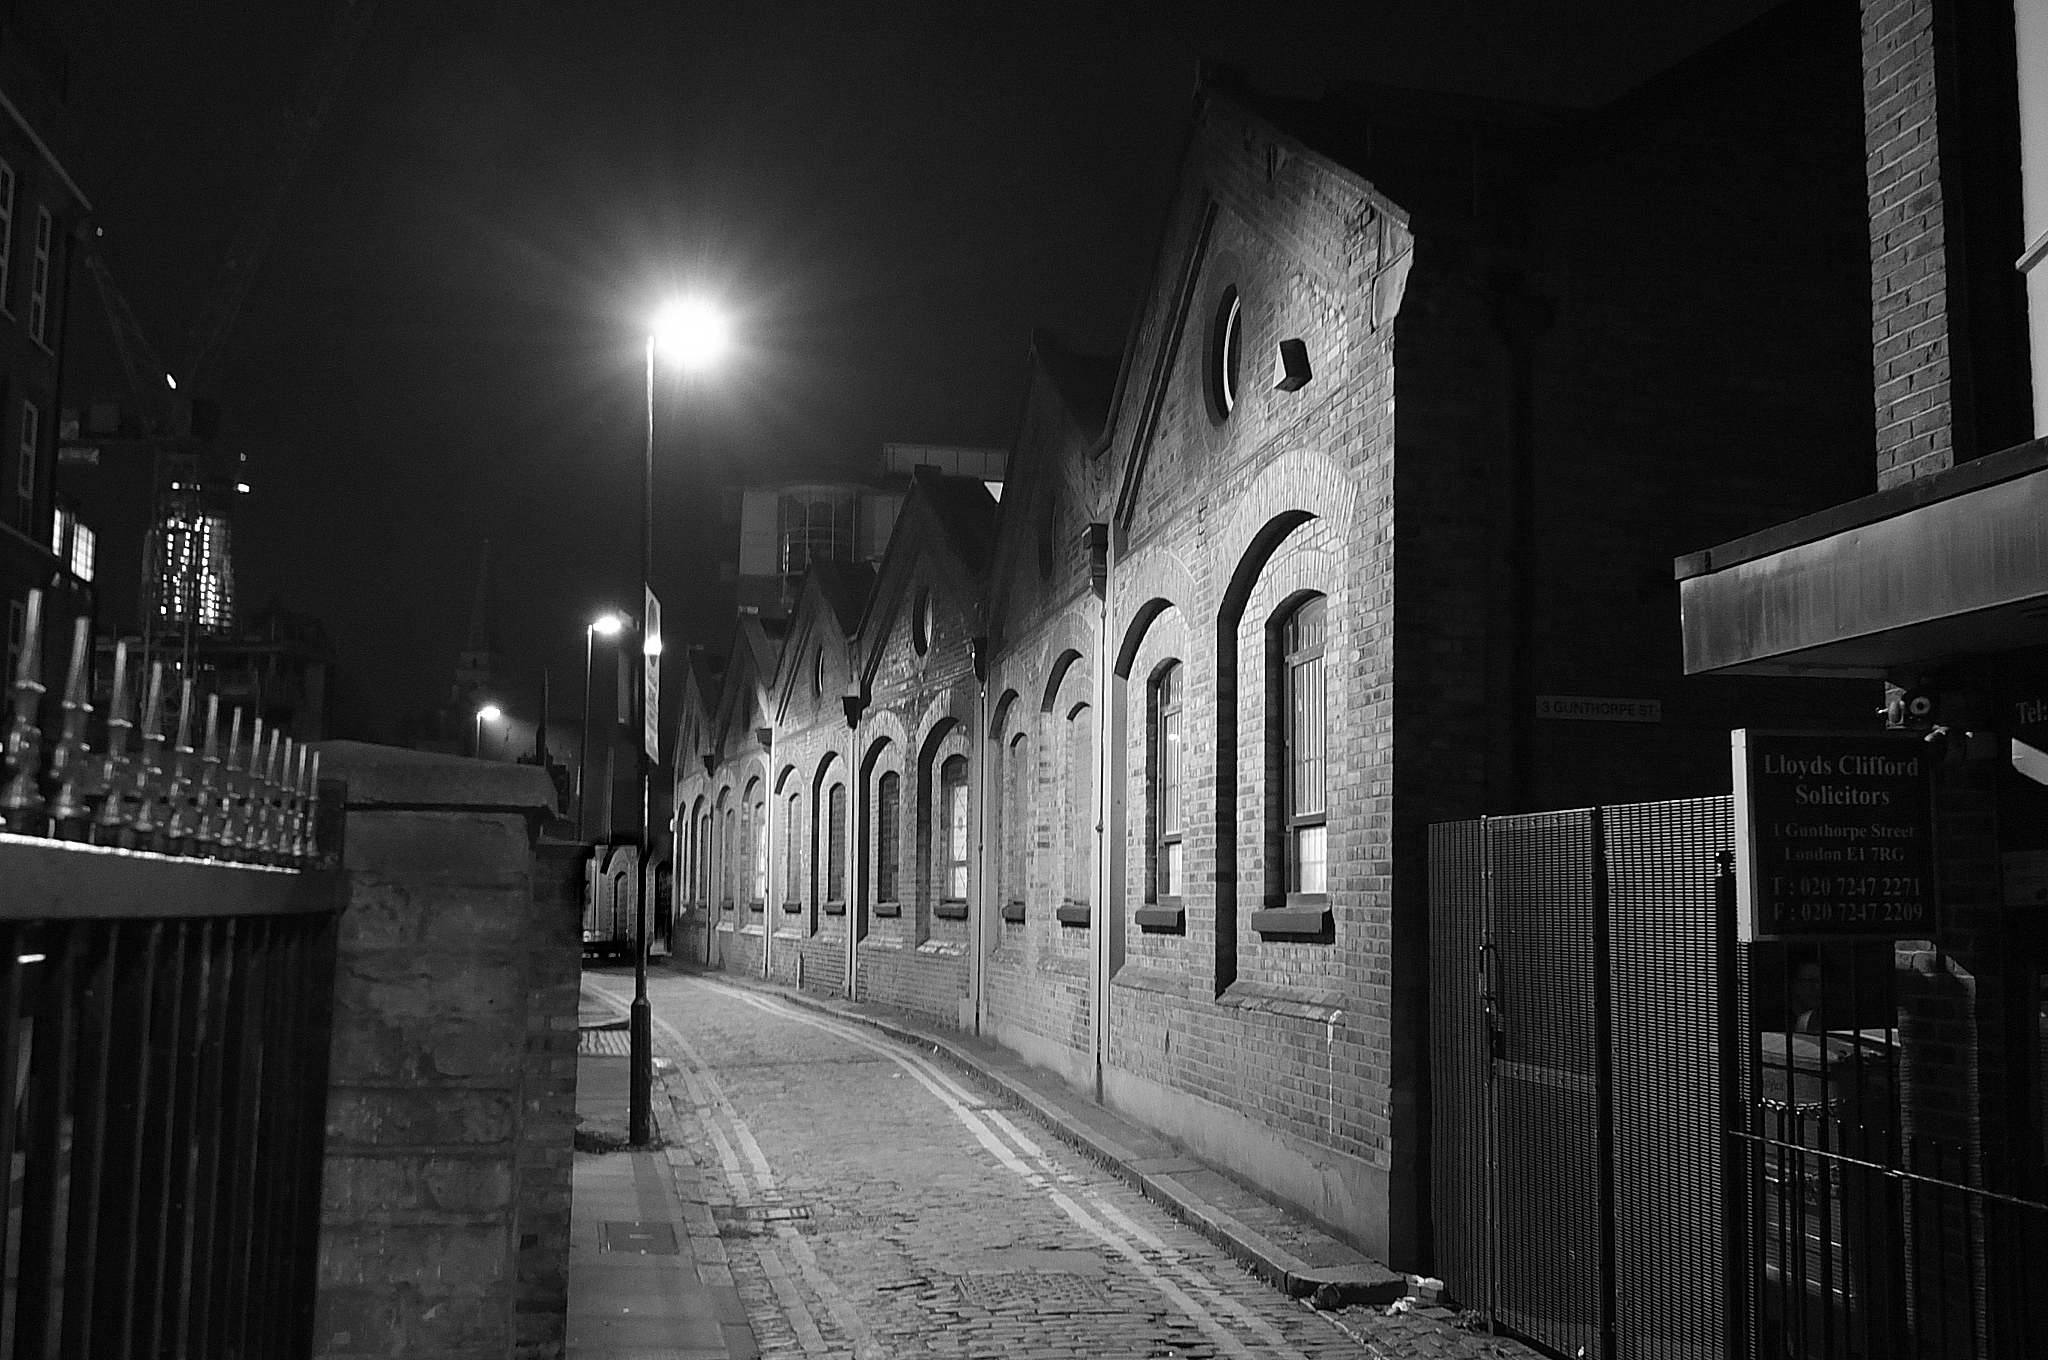 Gunthorpe St (formerly George Yard) where a possible early Ripper victim was killed